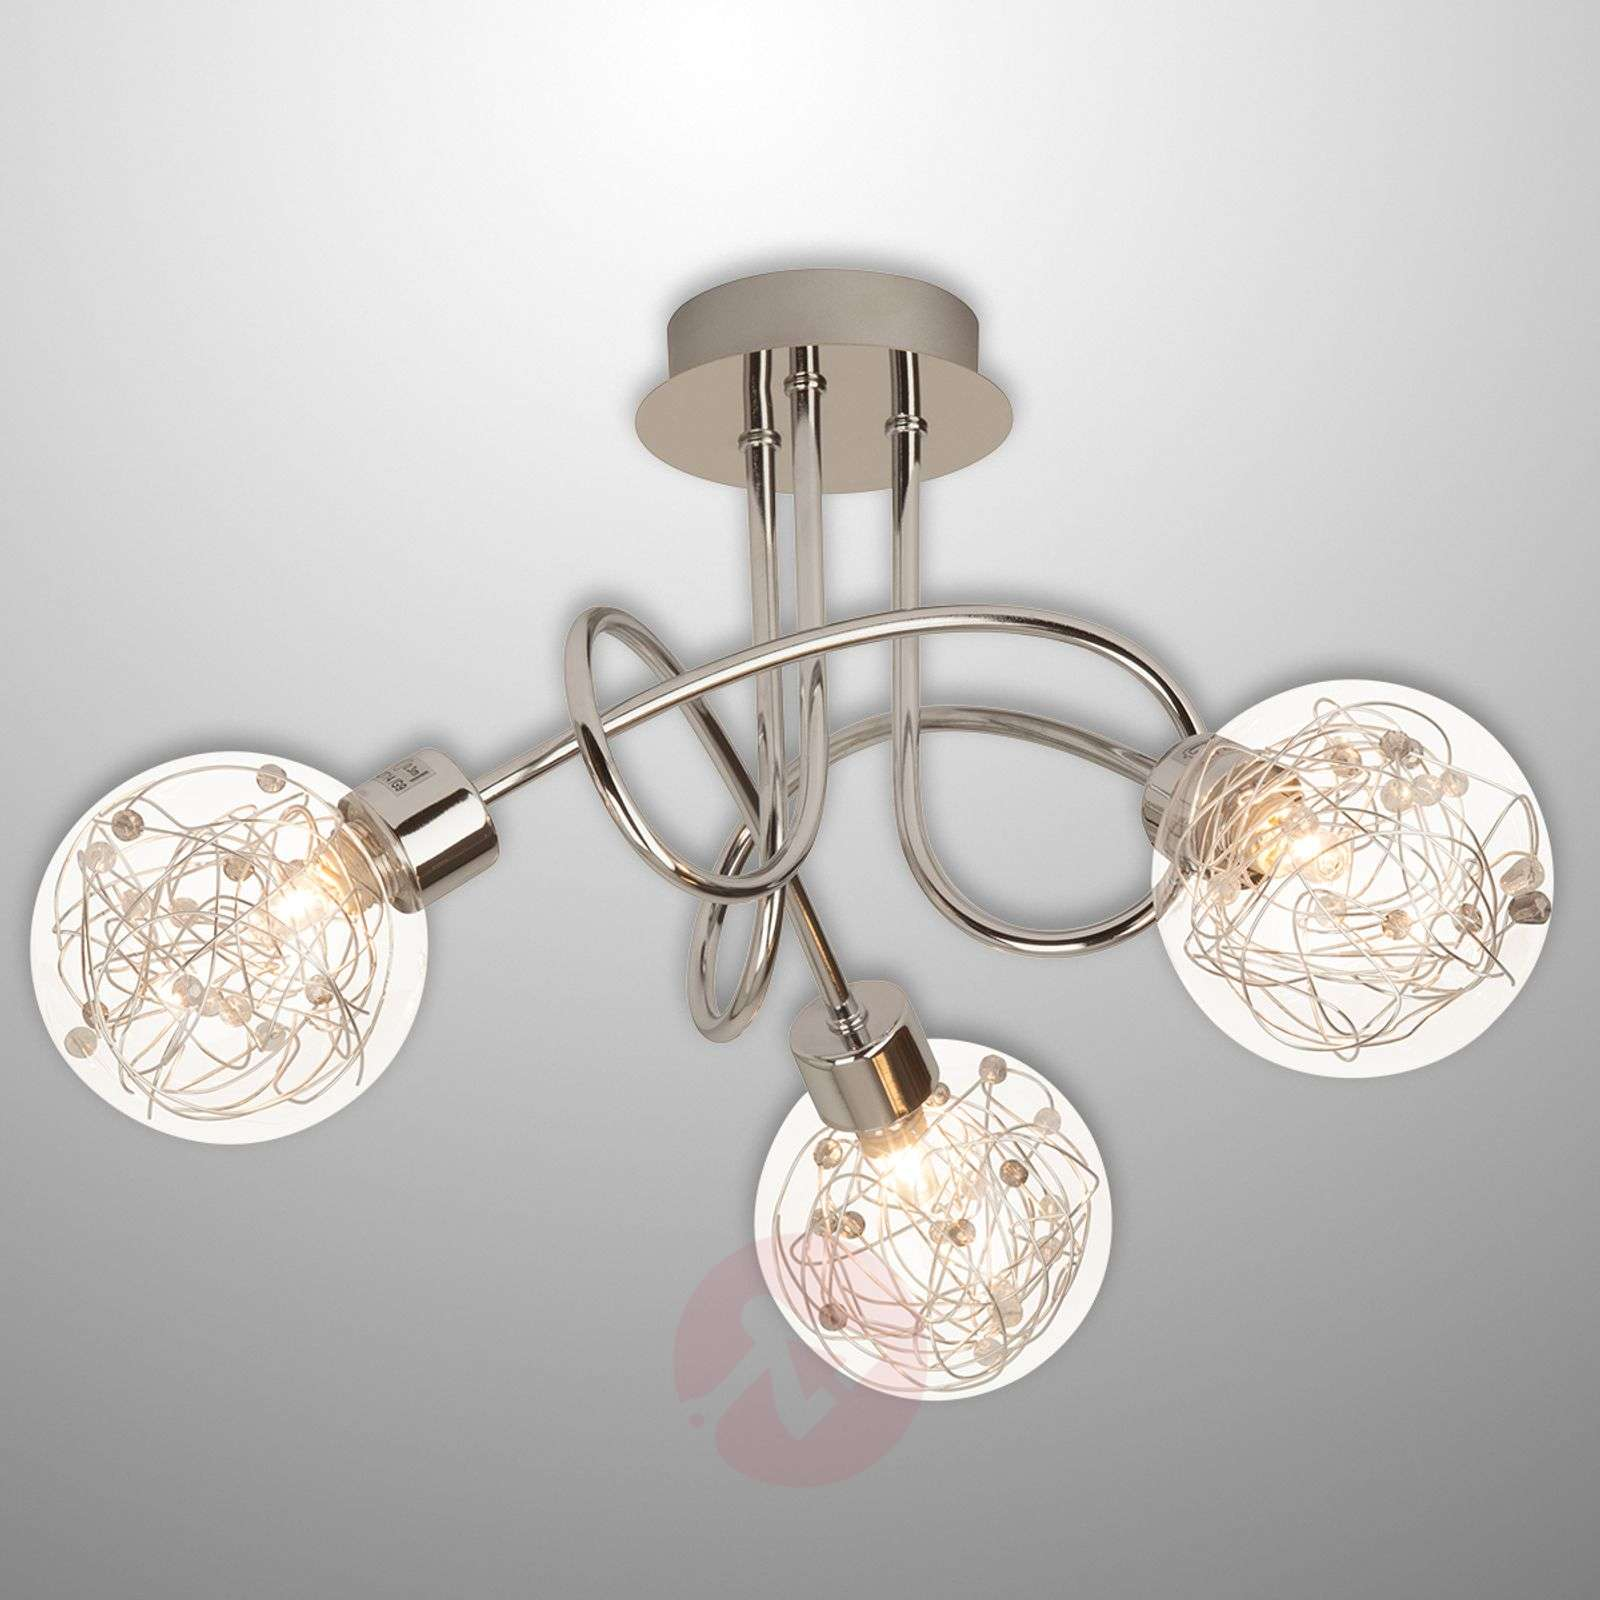 3 Bulb Ceiling Light: Joya - 3-bulb Ceiling Light With Glass Lampshades